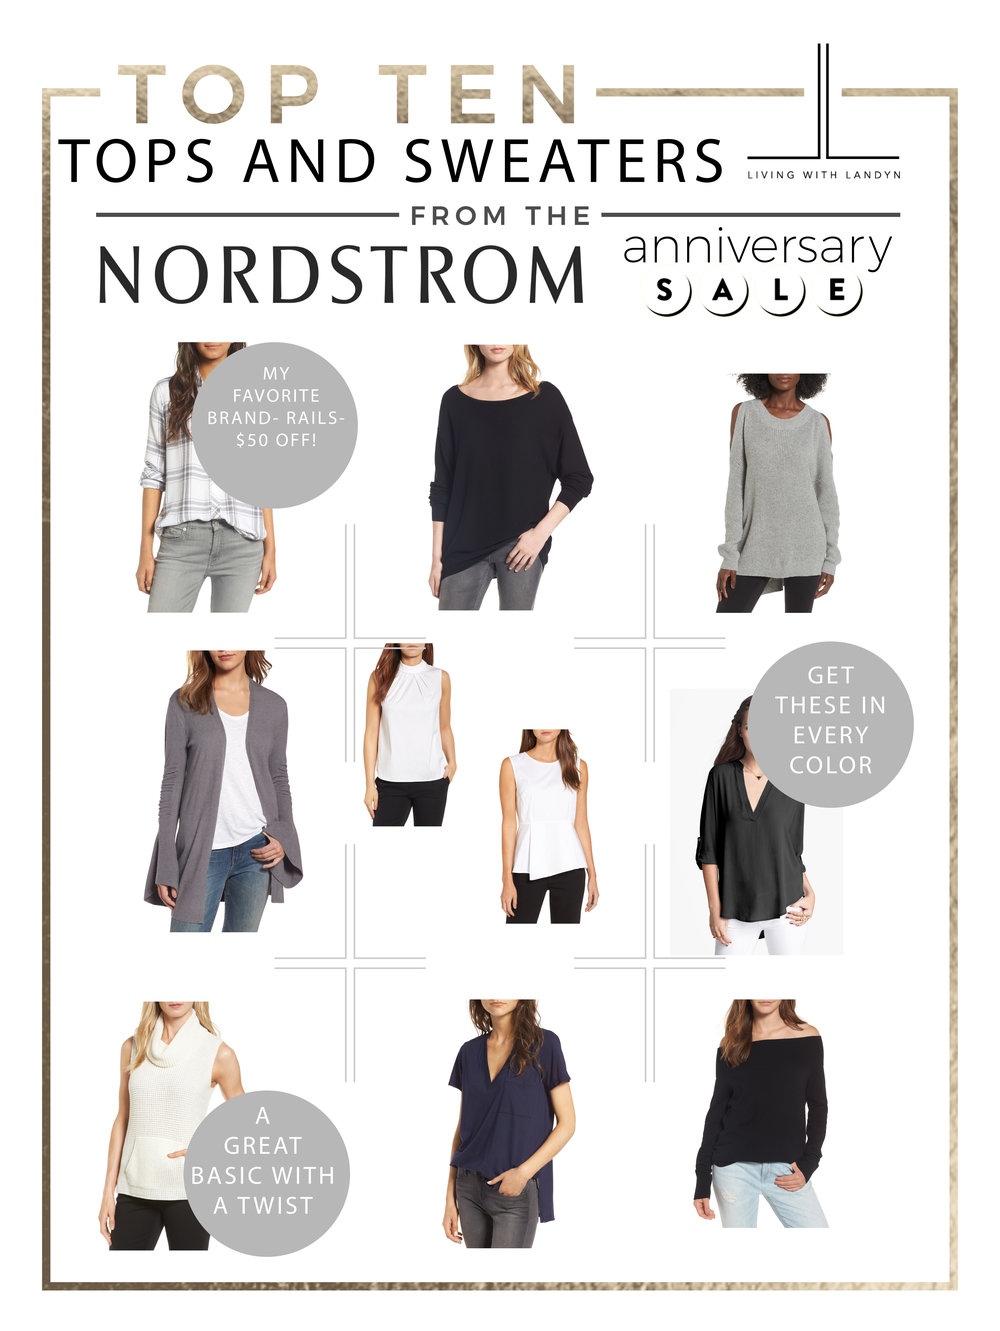 TOP 10 TOPS AND SWEATERS FROM THE ANNIVERSARY SALE